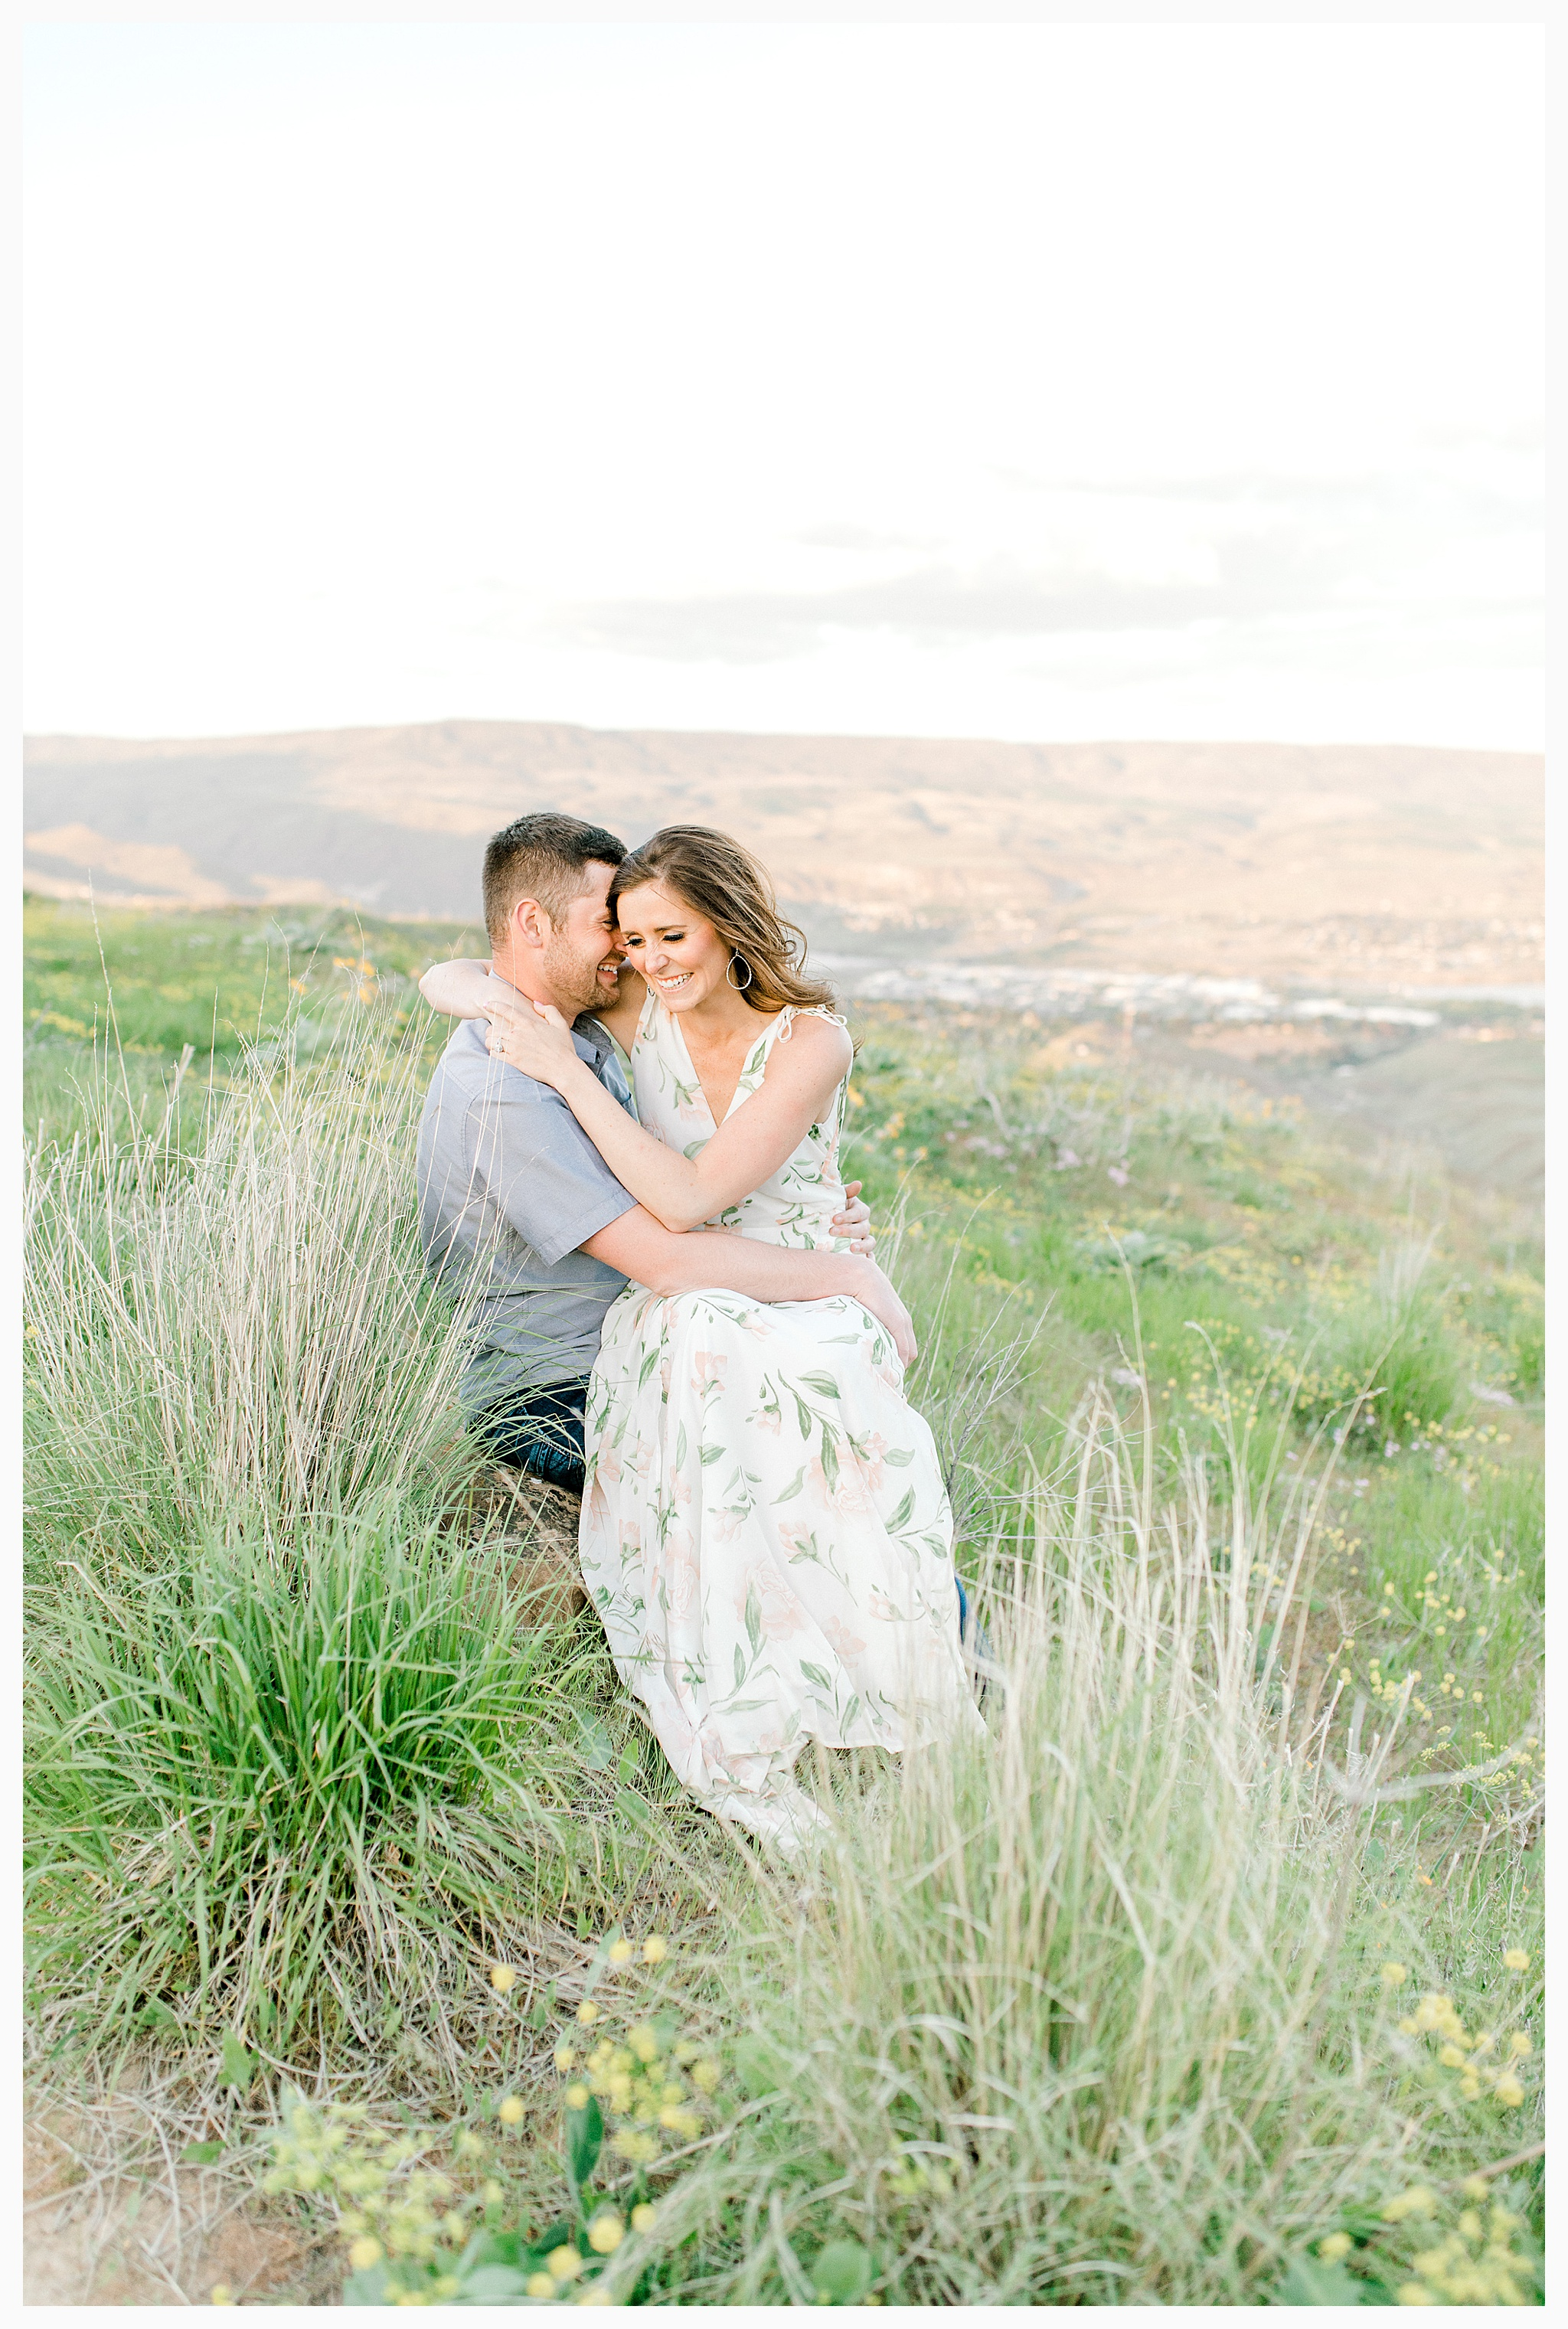 Engagement session amongst the wildflowers in Wenatchee, Washington | Engagement Session Outfit Inspiration for Wedding Photography with Emma Rose Company | Light and Airy PNW Photographer, Seattle Bride_0021.jpg